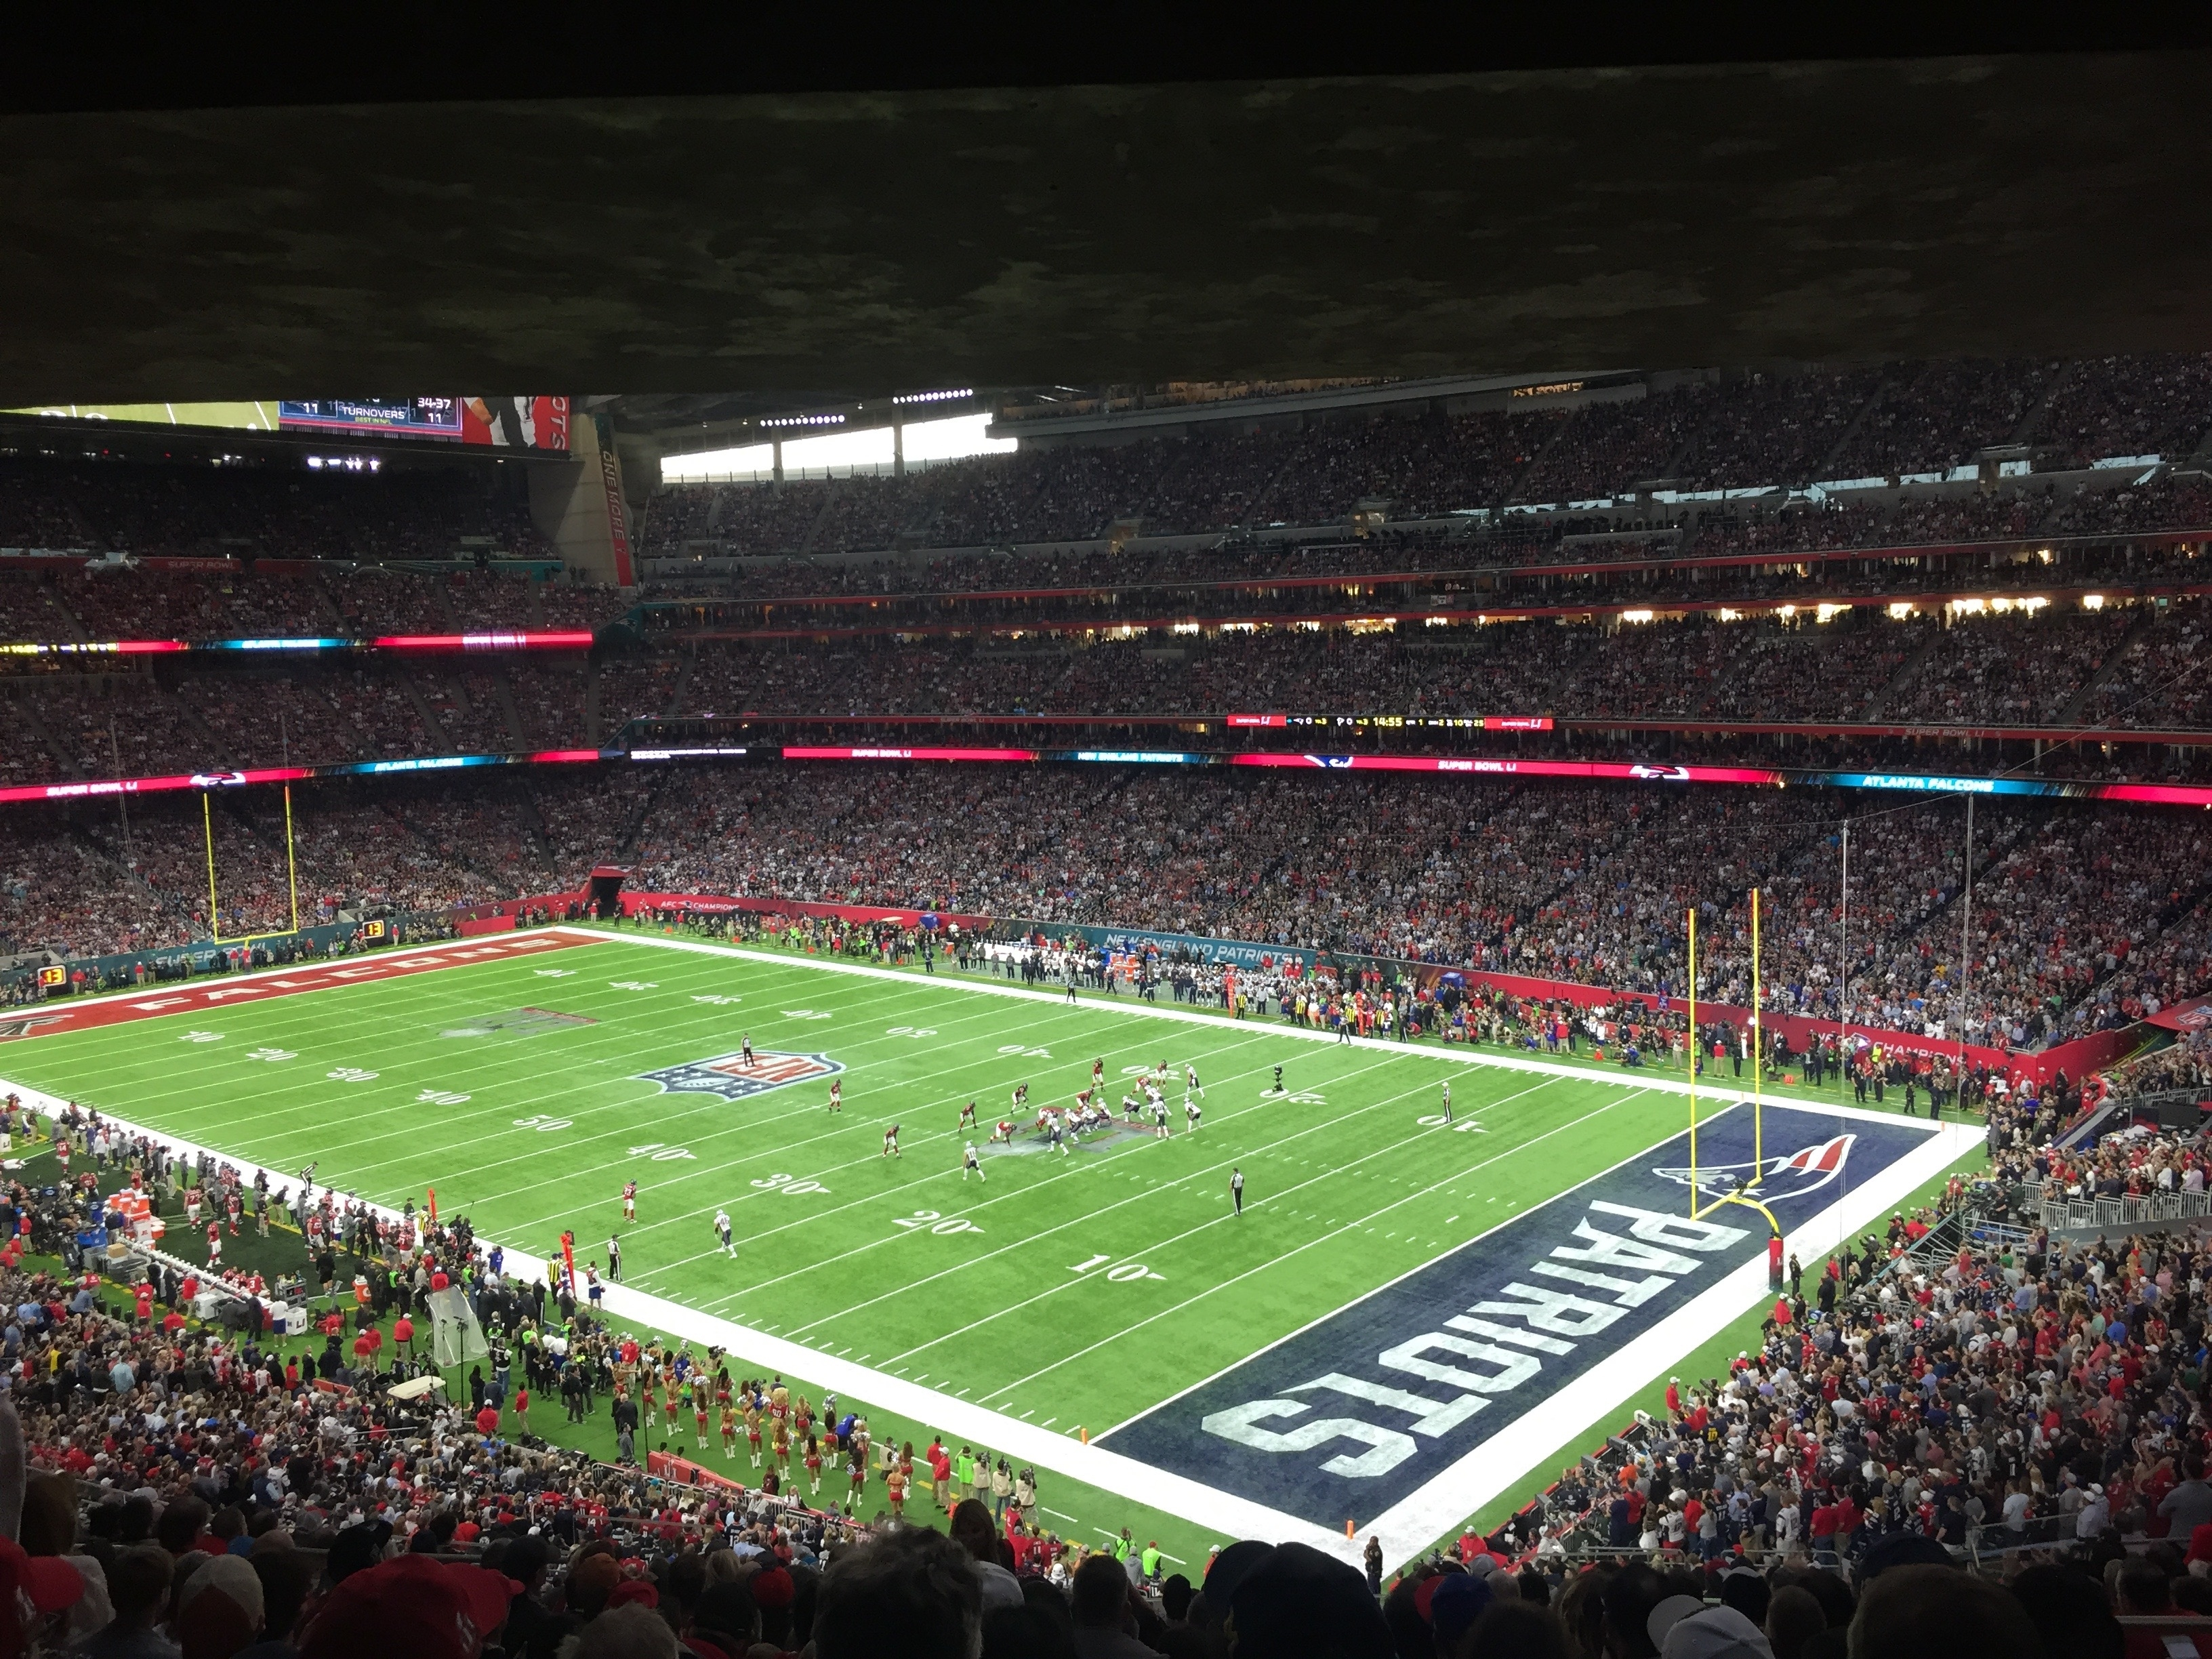 Super Bowl 2018 Tickets & Packages Now On Sale for Super Bowl Tickets For Sale